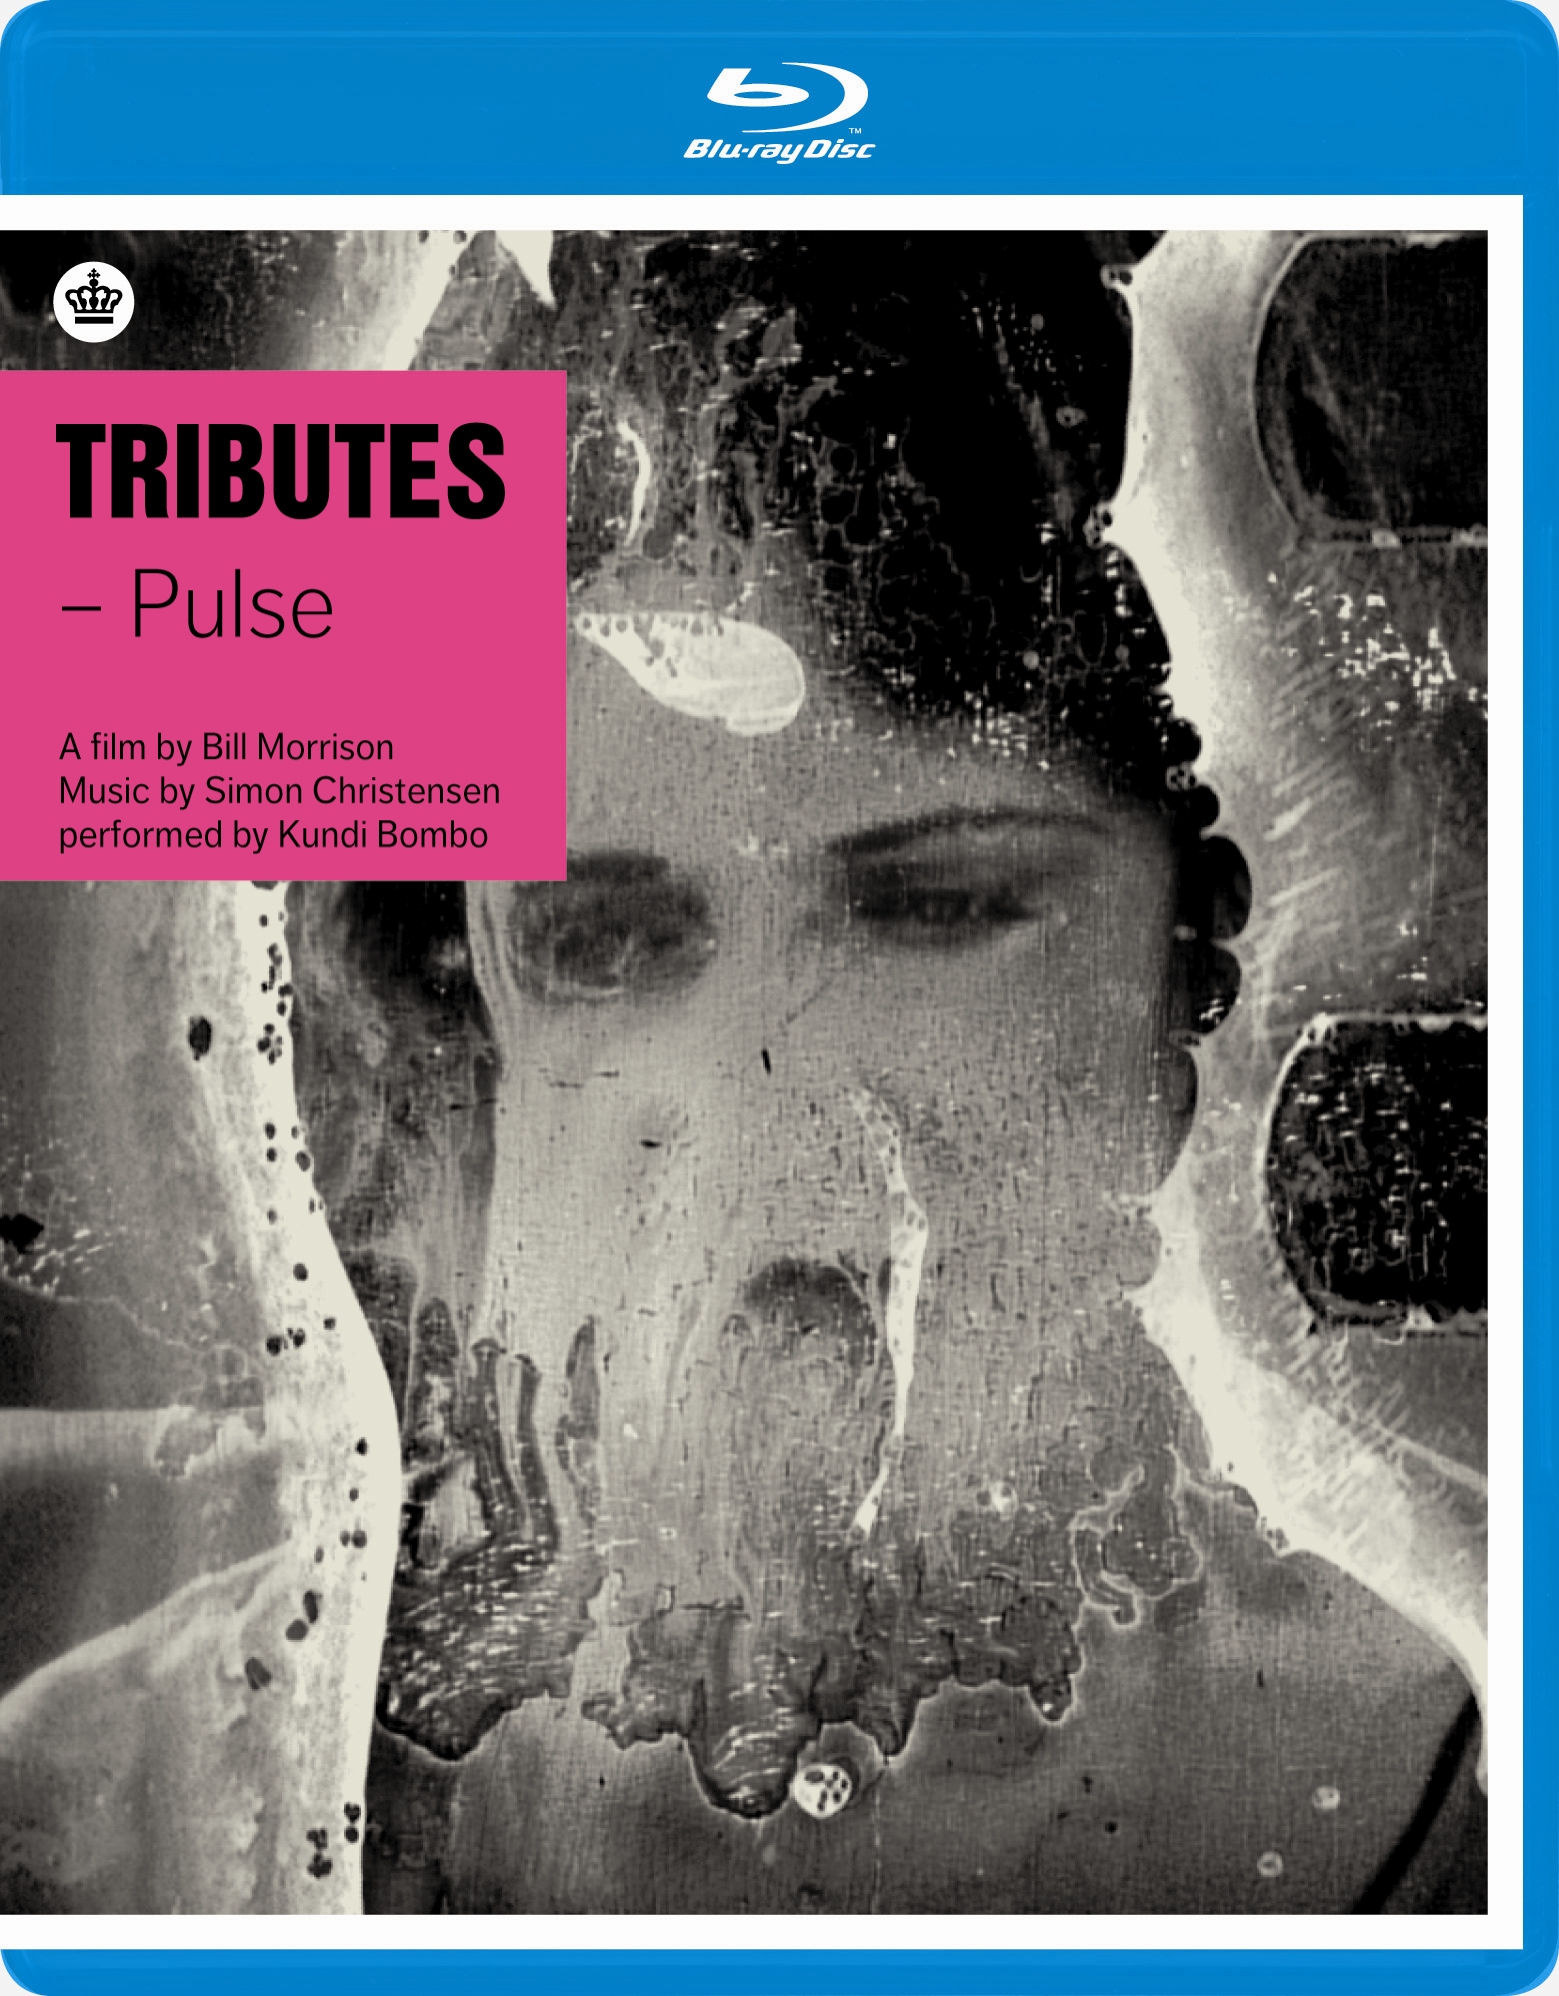 TRIBUTES - PULSE - A collaboration between American filmmaker Bill Morrison and Danish composer Simon Christensen. Through image and sound Morrison and Christensen have created a requiem for the 20th century - the persistence of a pulse, the contractions of the heart. Featuring Christina Åstrand (violin) and Peter Navarro-Alonso (saxophones). Blu-ray release. Dacapo Records 2011.